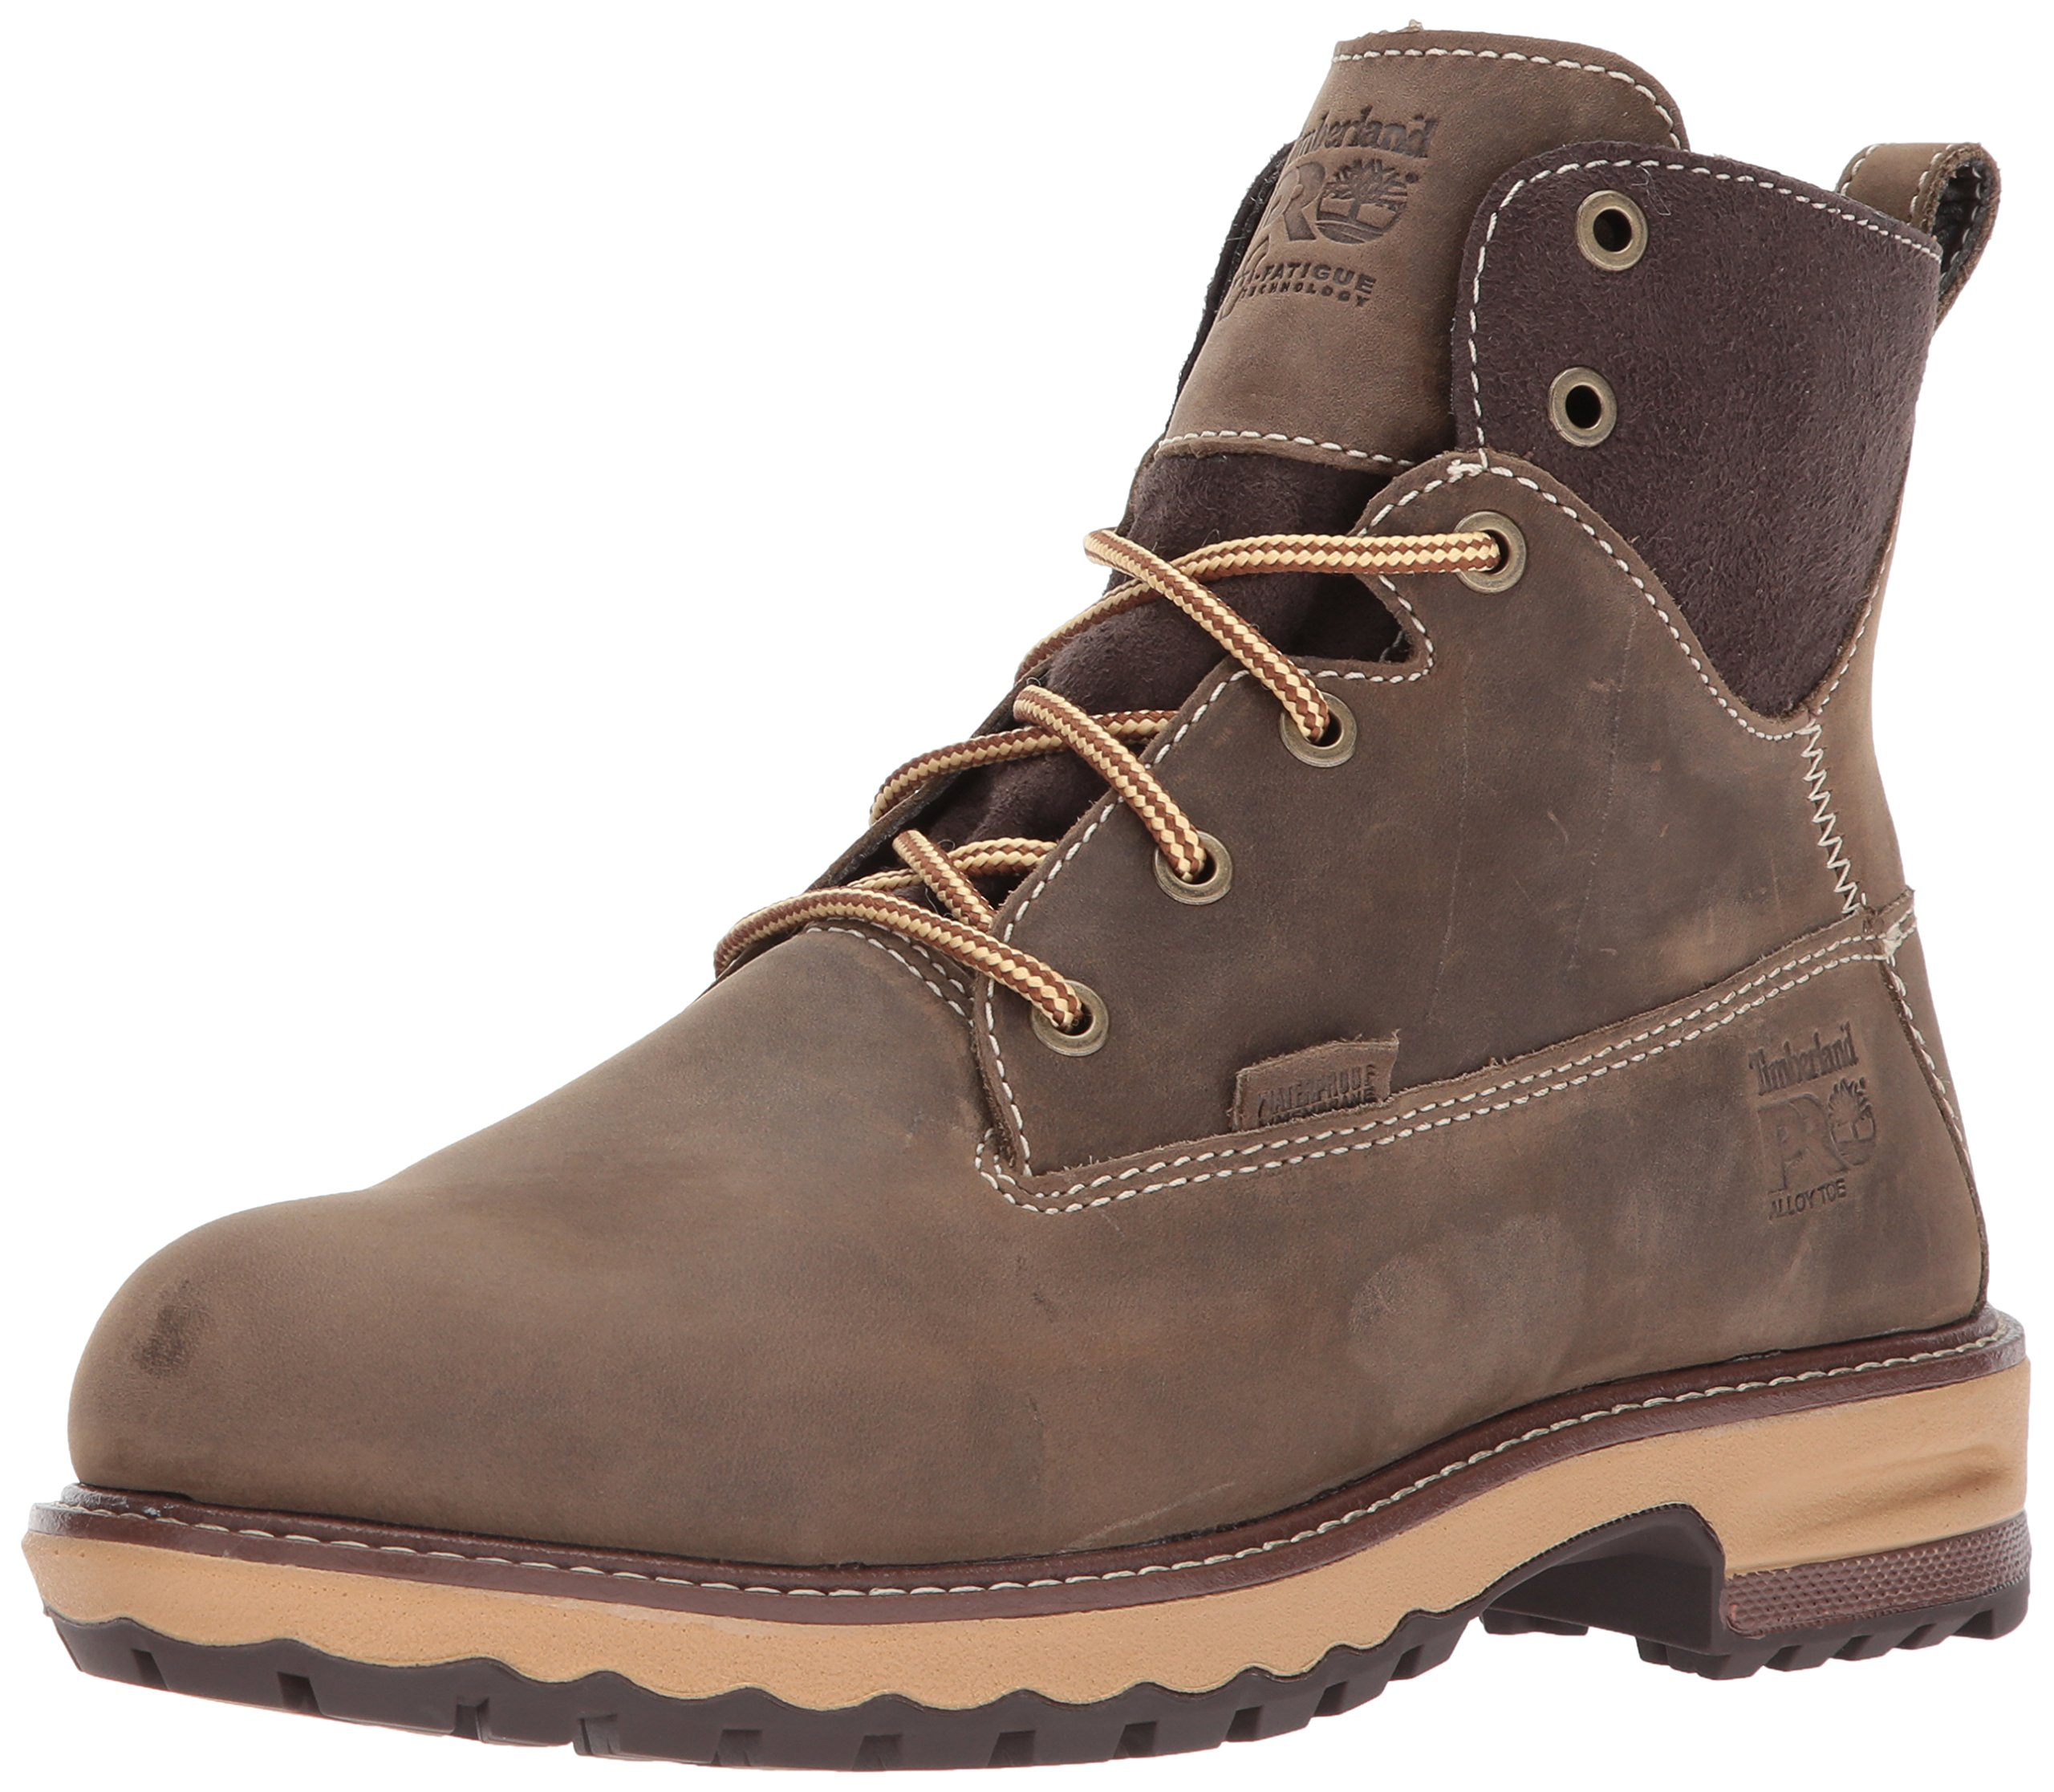 Timberland PRO Women's Hightower 6'' Alloy Toe Waterproof Industrial and Construction Shoe, Turkish Coffee, 8 M US